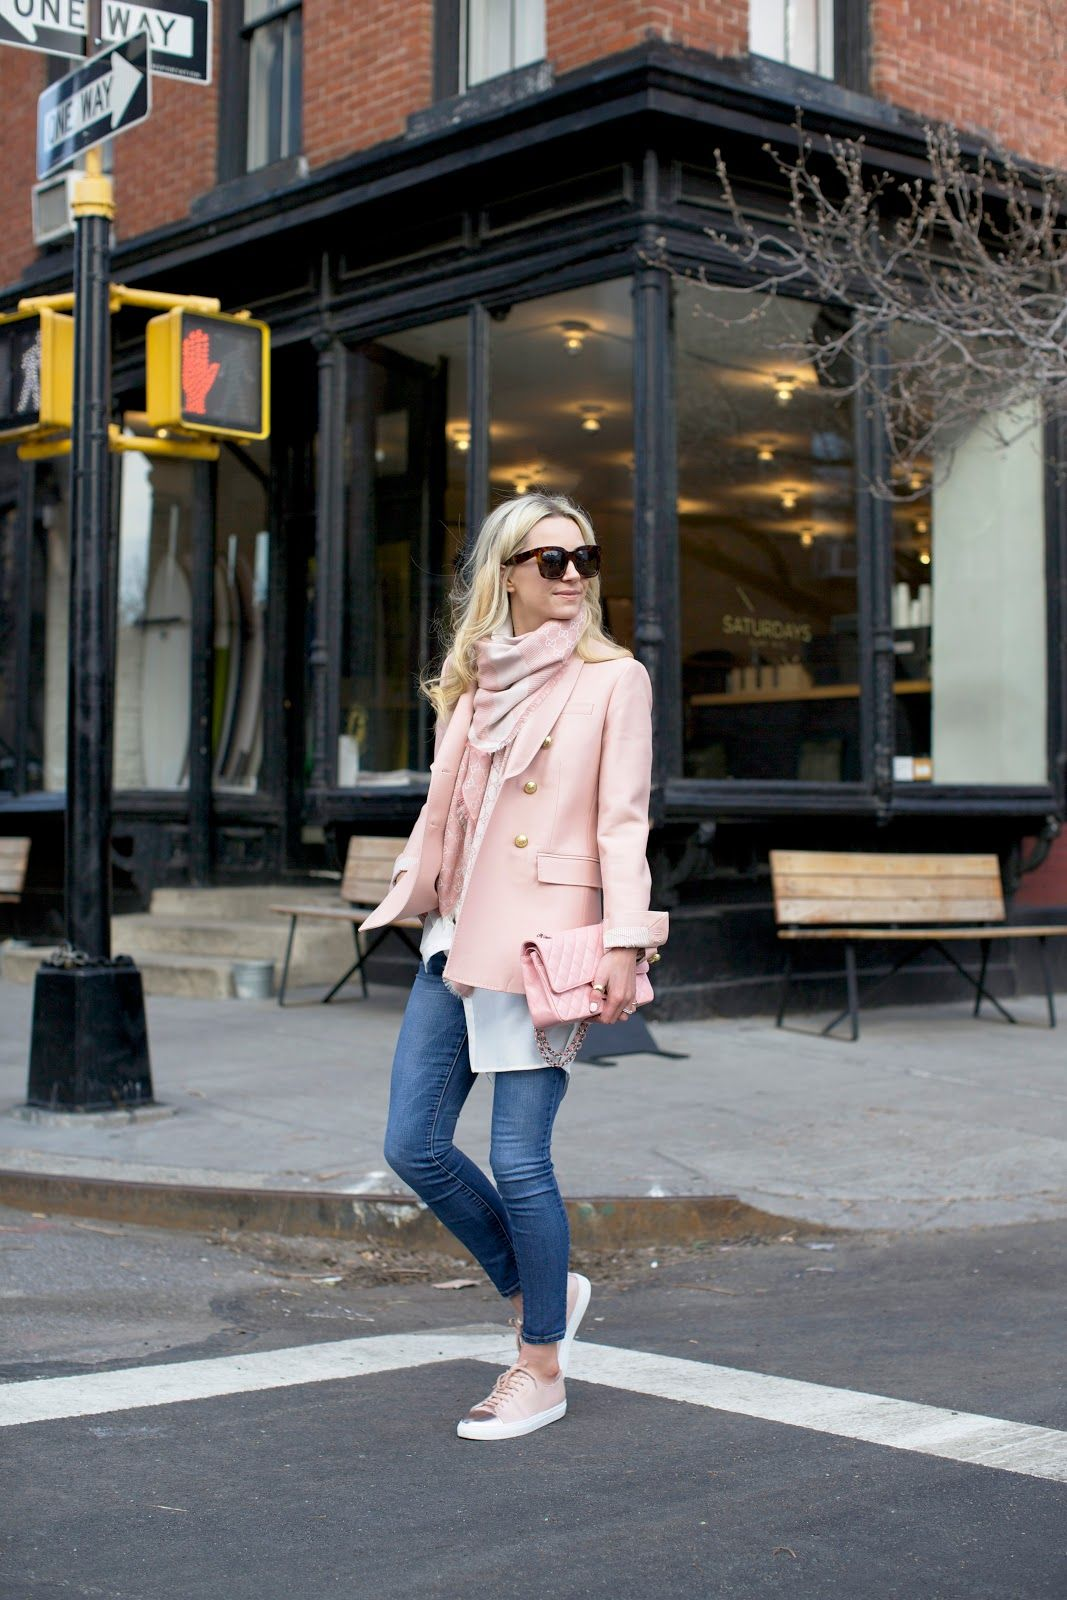 95ed510744096 Atlantic-Pacific  tgif    denim style. The shoes! The coat! Obsessed with  blush at the moment.